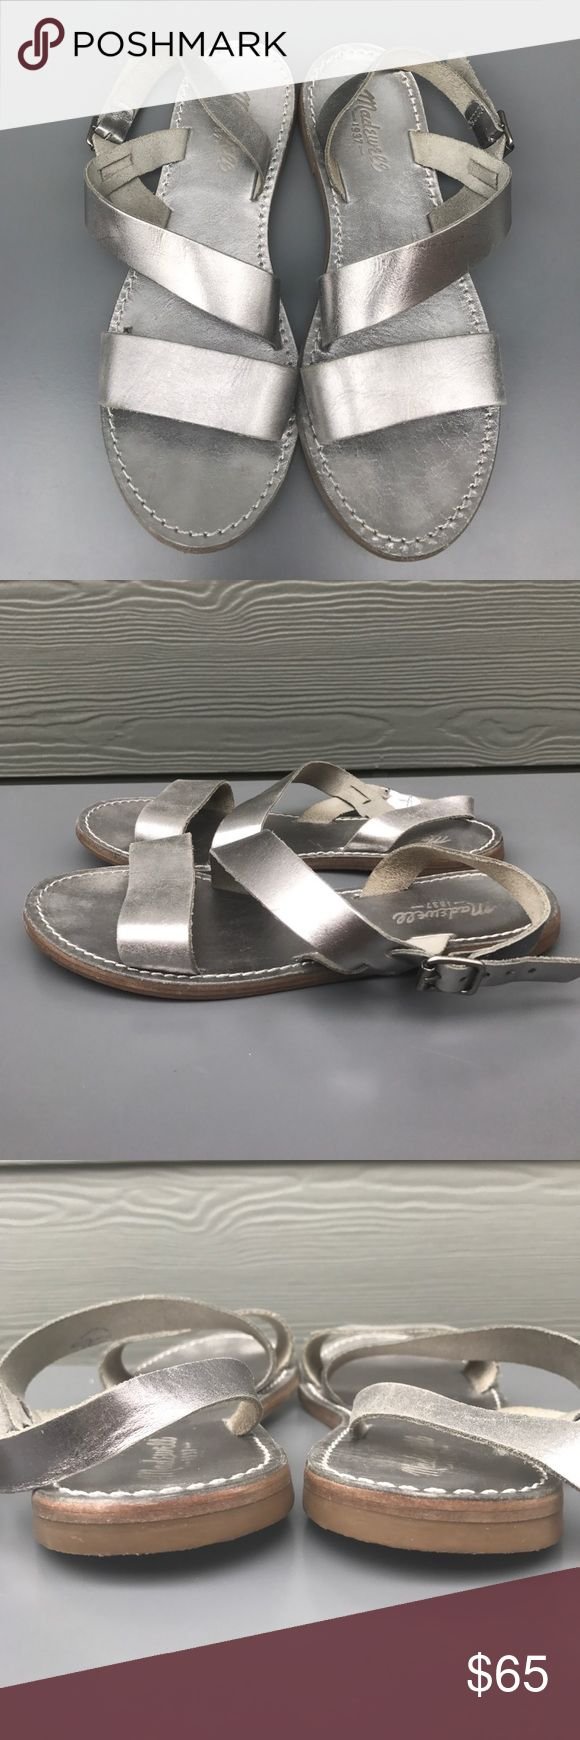 Madewell silver soft leather flat sandal Great condition Madewell soft silver leather flat sandals with buckle at ankle and diagonal strap across foot. I've worn these a few times for a date night, they are so lovely and soft but I sadly have to have arch support now. So pretty with a midi skirt or cropped jeans. Madewell Shoes Sandals